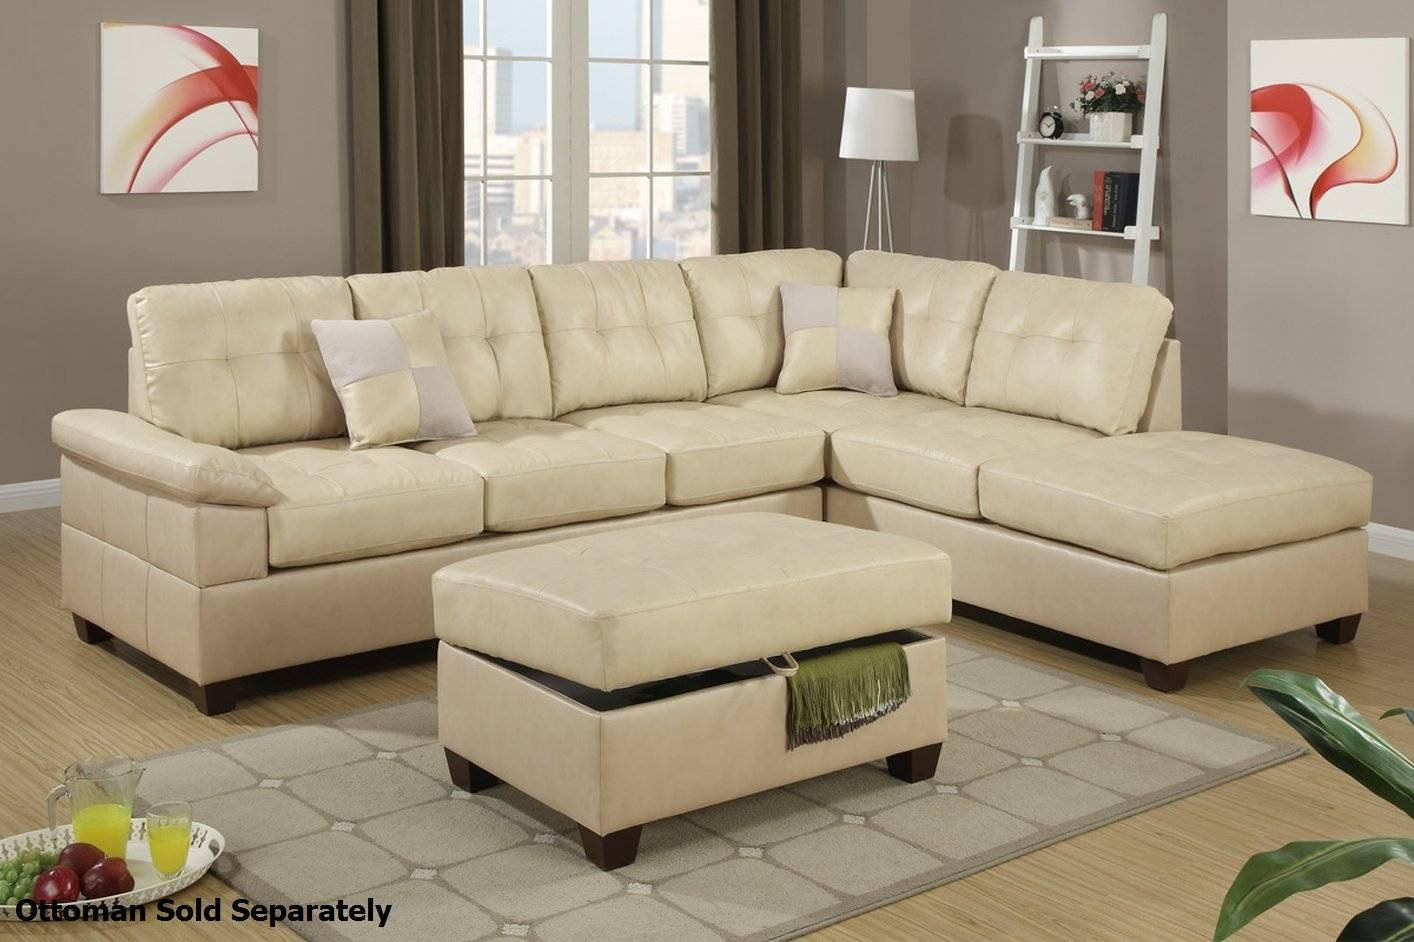 Beige Color Sectional Sofa | Tehranmix Decoration intended for Cream Sectional Leather Sofas (Image 1 of 12)